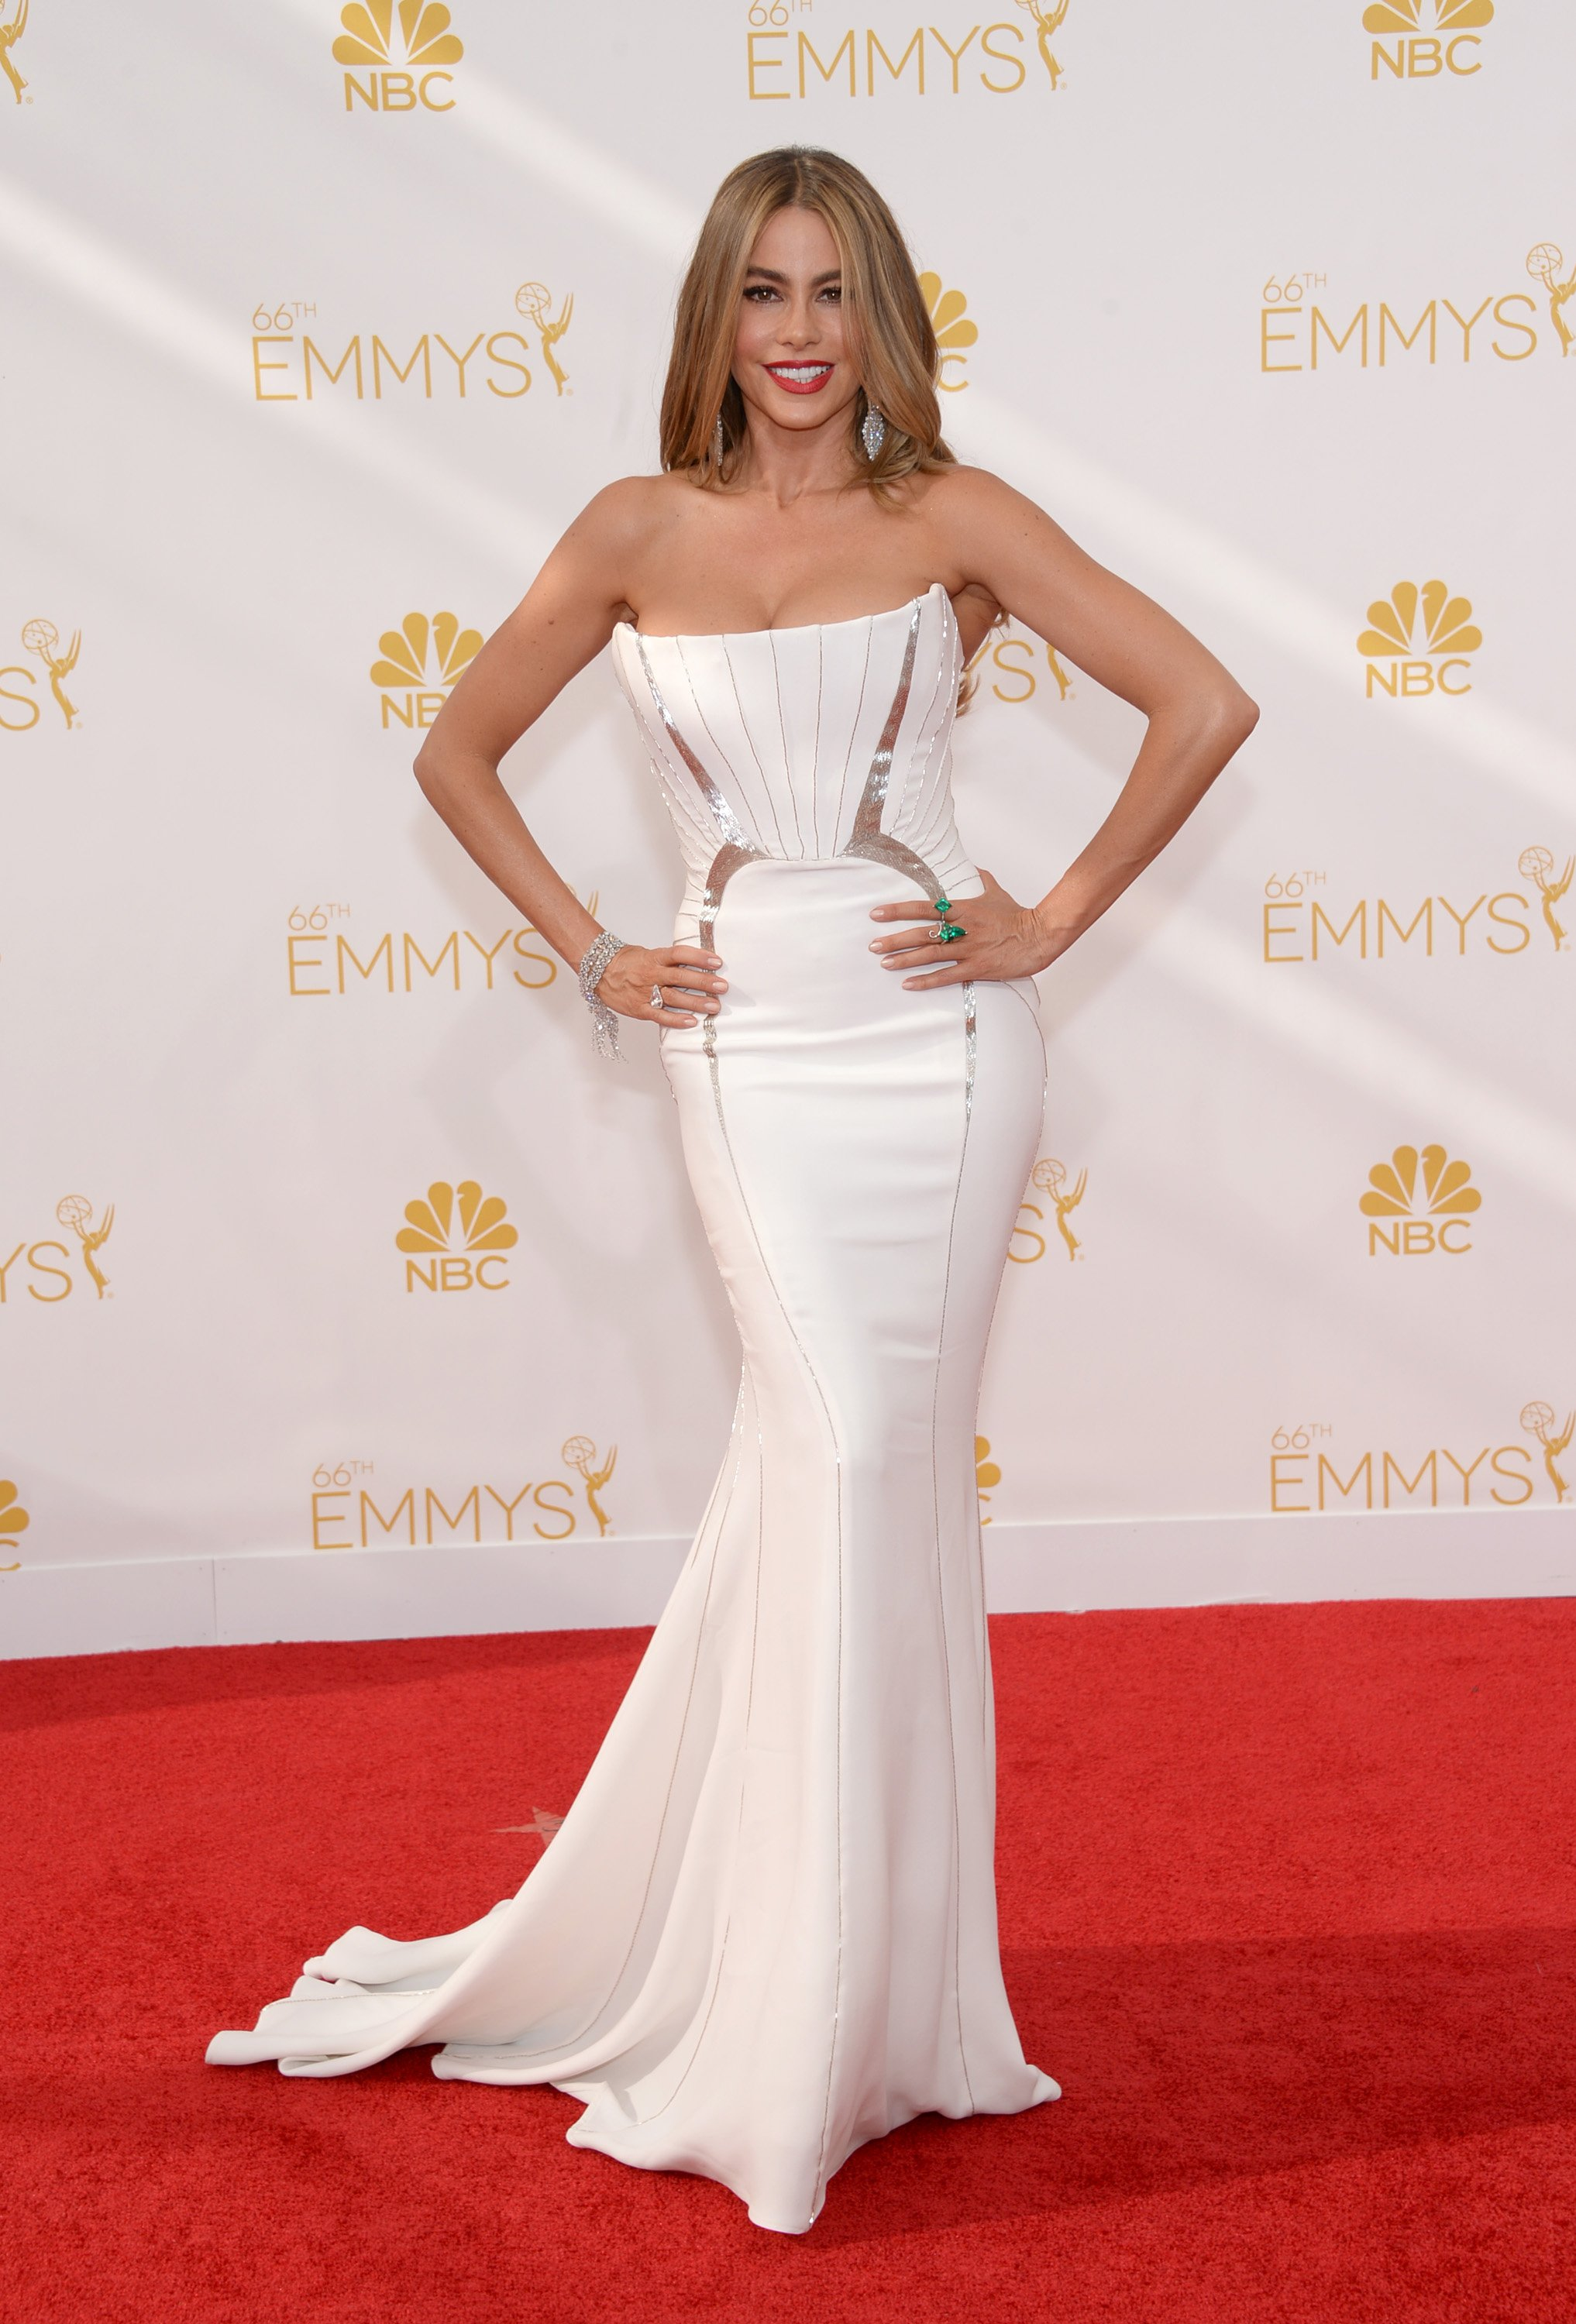 Sofía Vergara arrives at the 66th Primetime Emmy Awards at the Nokia Theatre L.A. Live on Monday, Aug. 25, 2014, in Los Angeles.